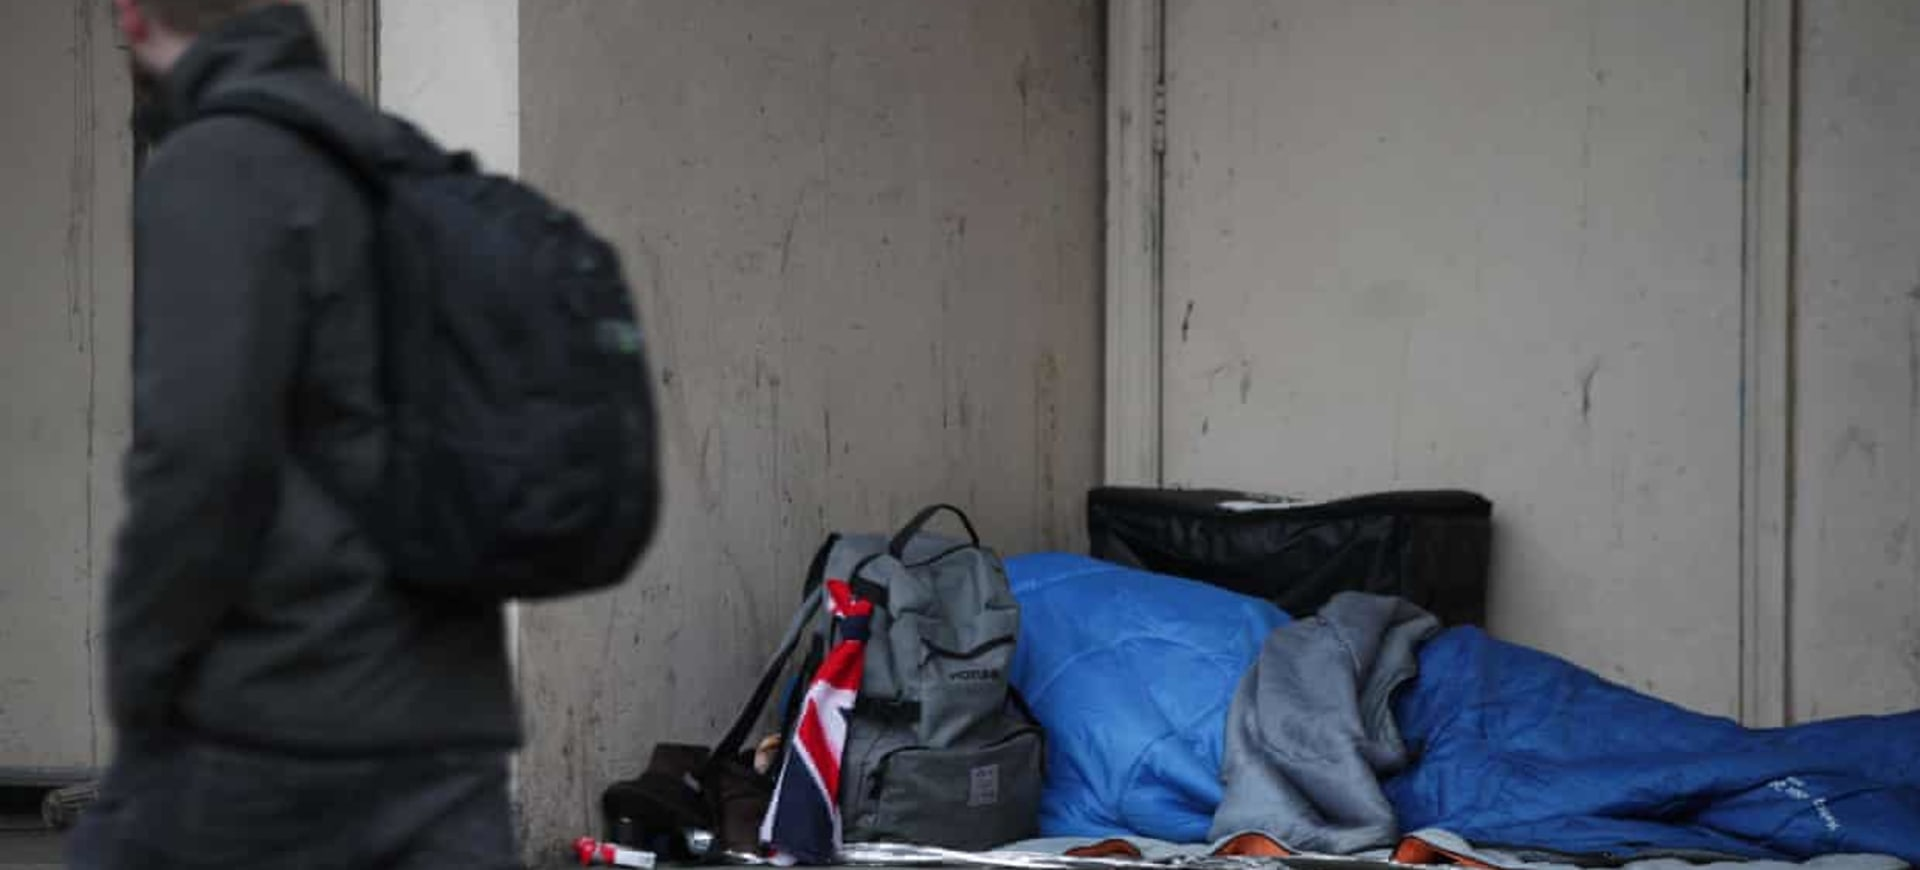 Homeless deaths rose by a record 22% last year, says ONS